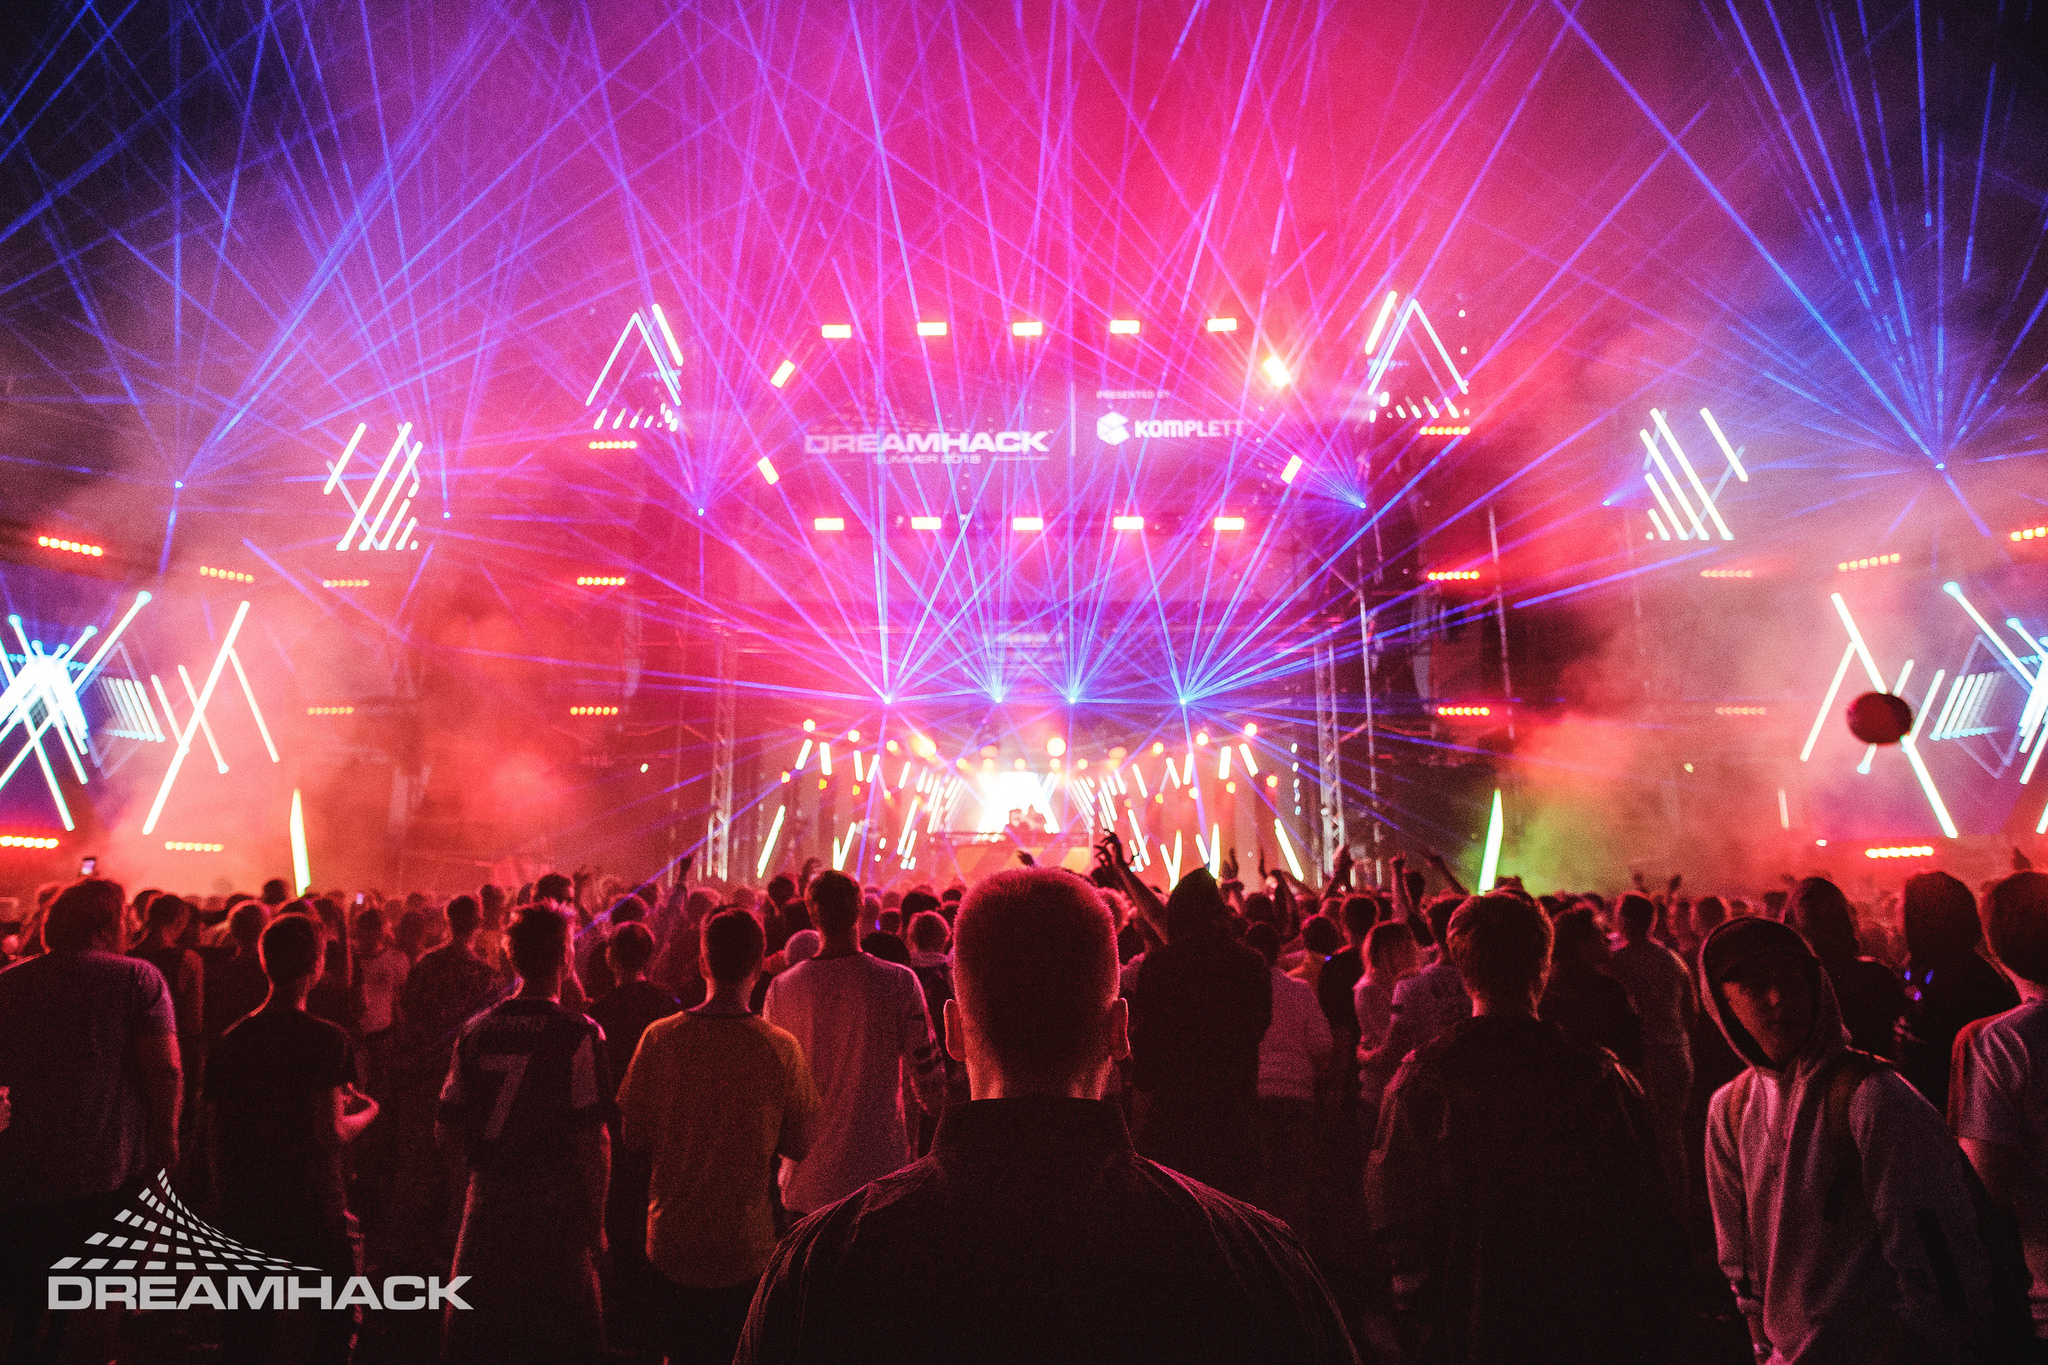 DreamHack stage